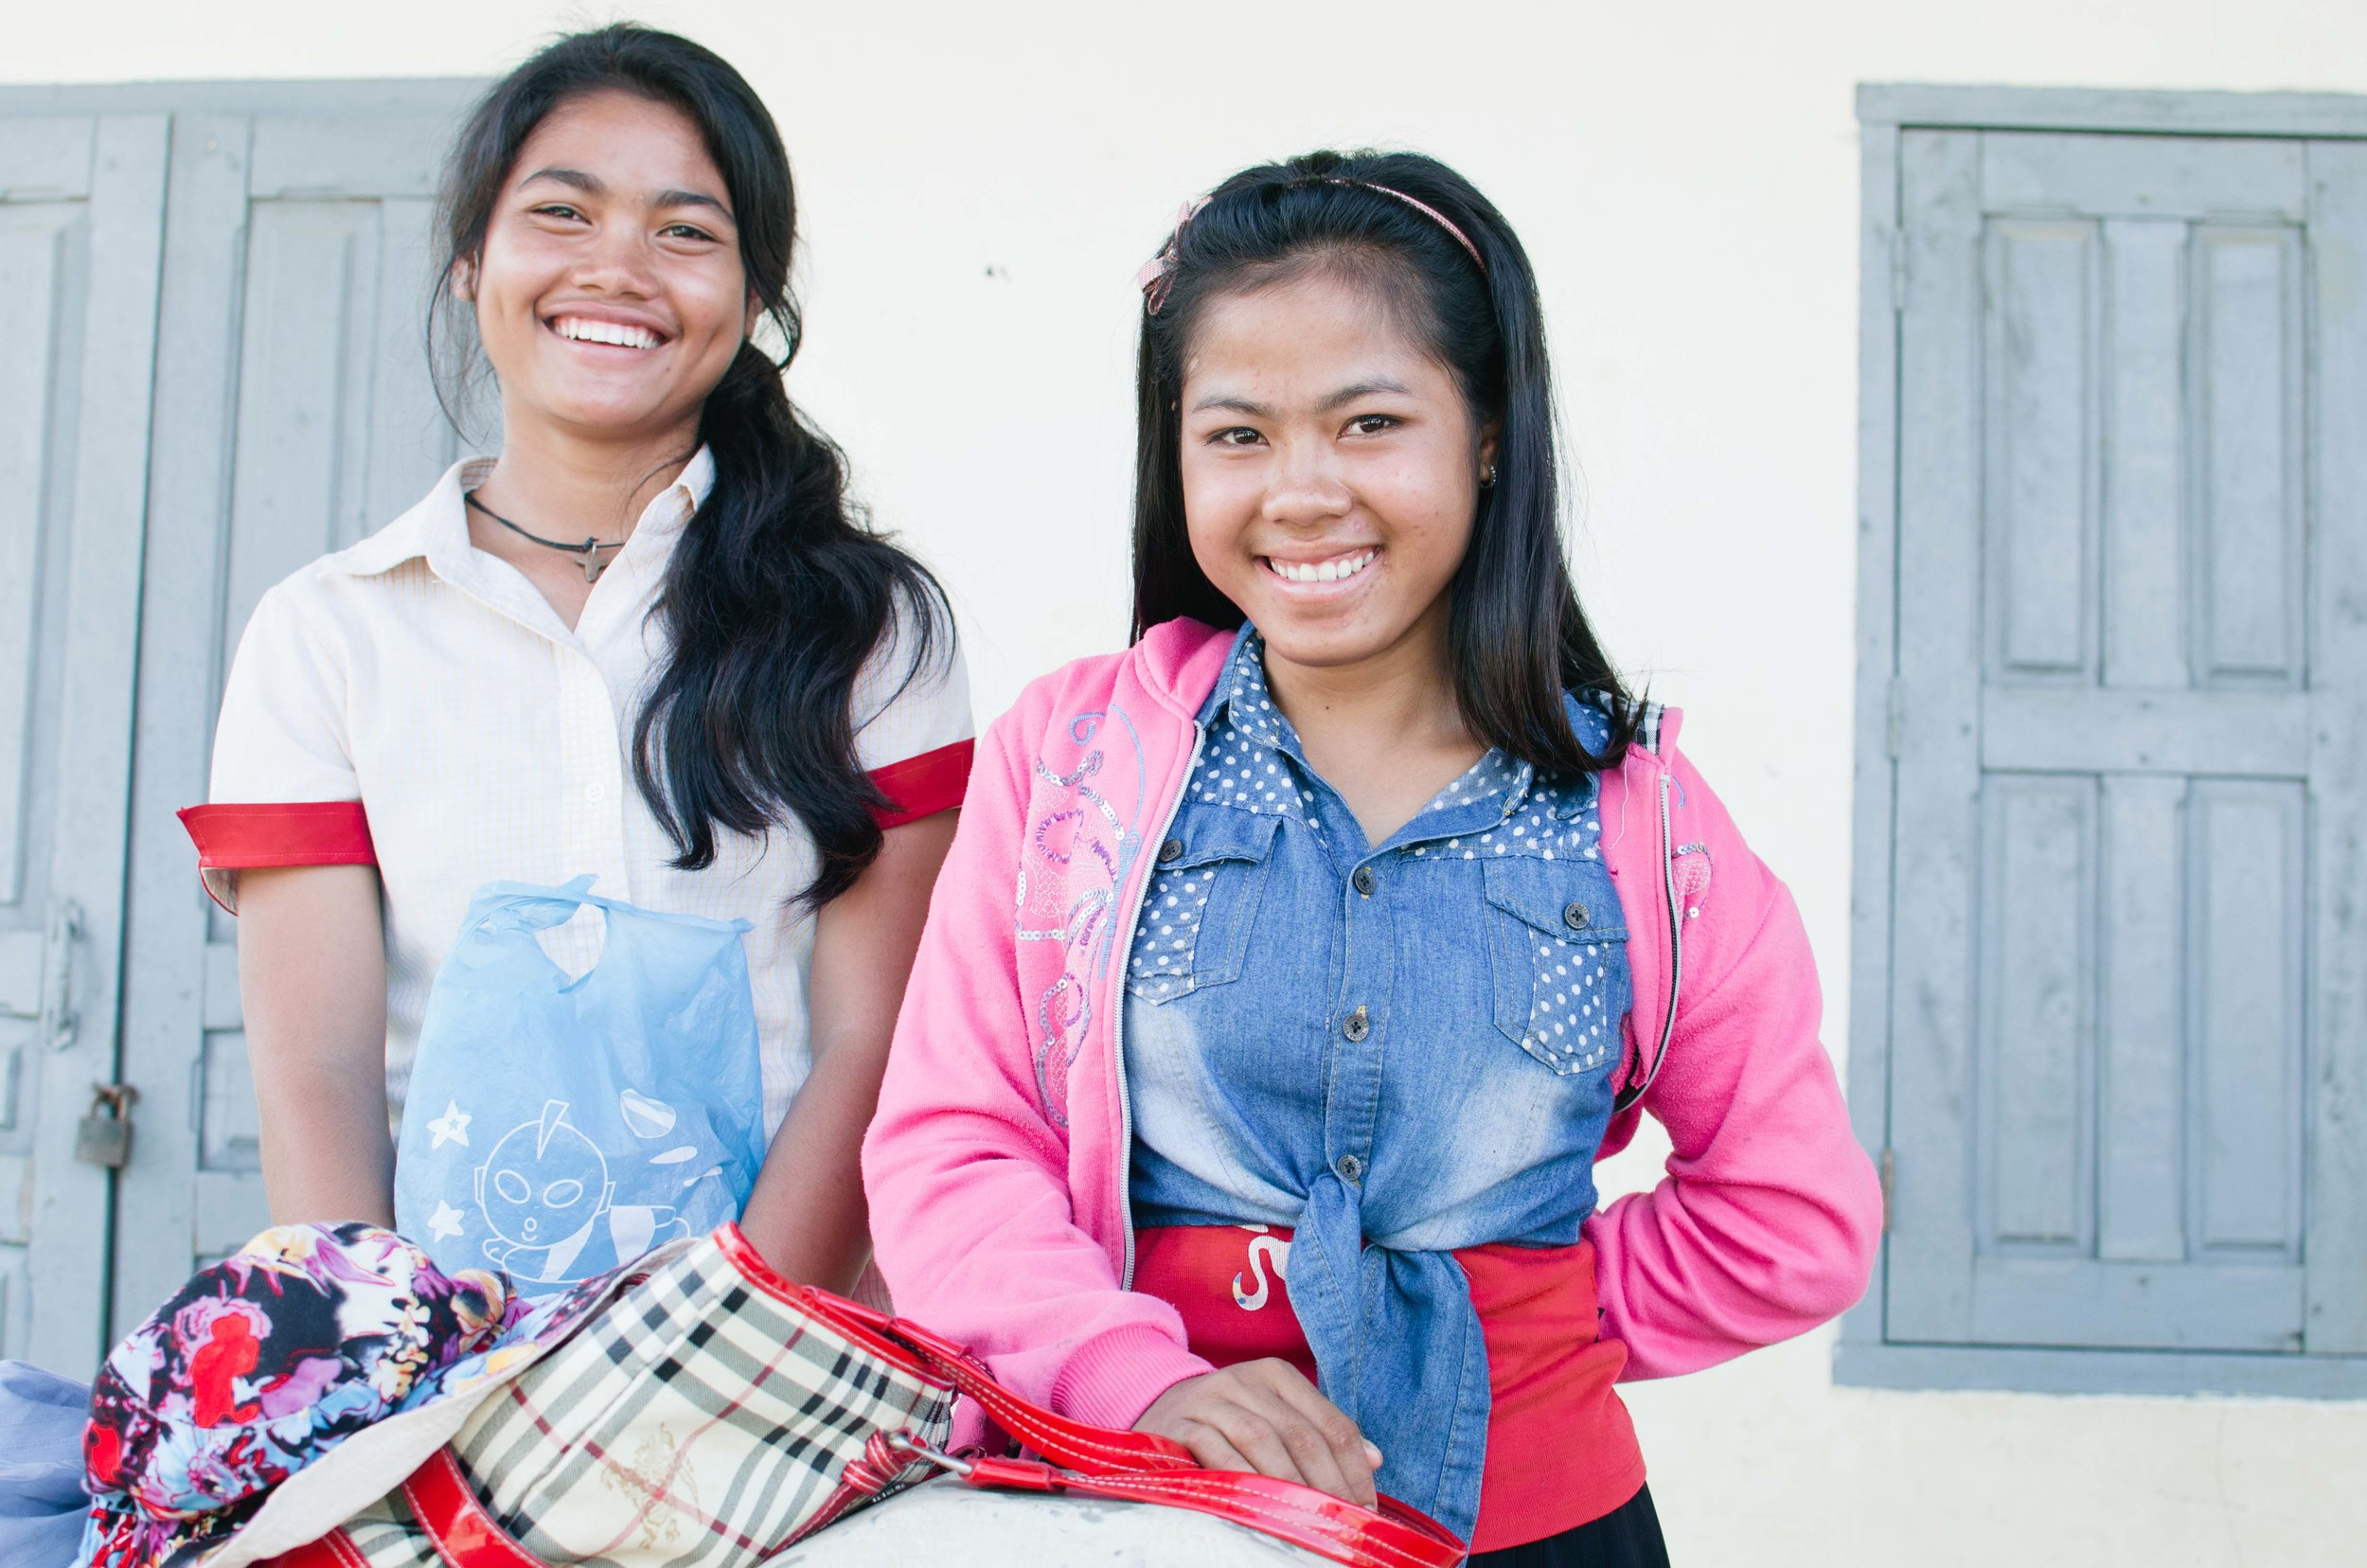 Srey Mom is on the left, and is pictured with Volek, another young woman in the program.